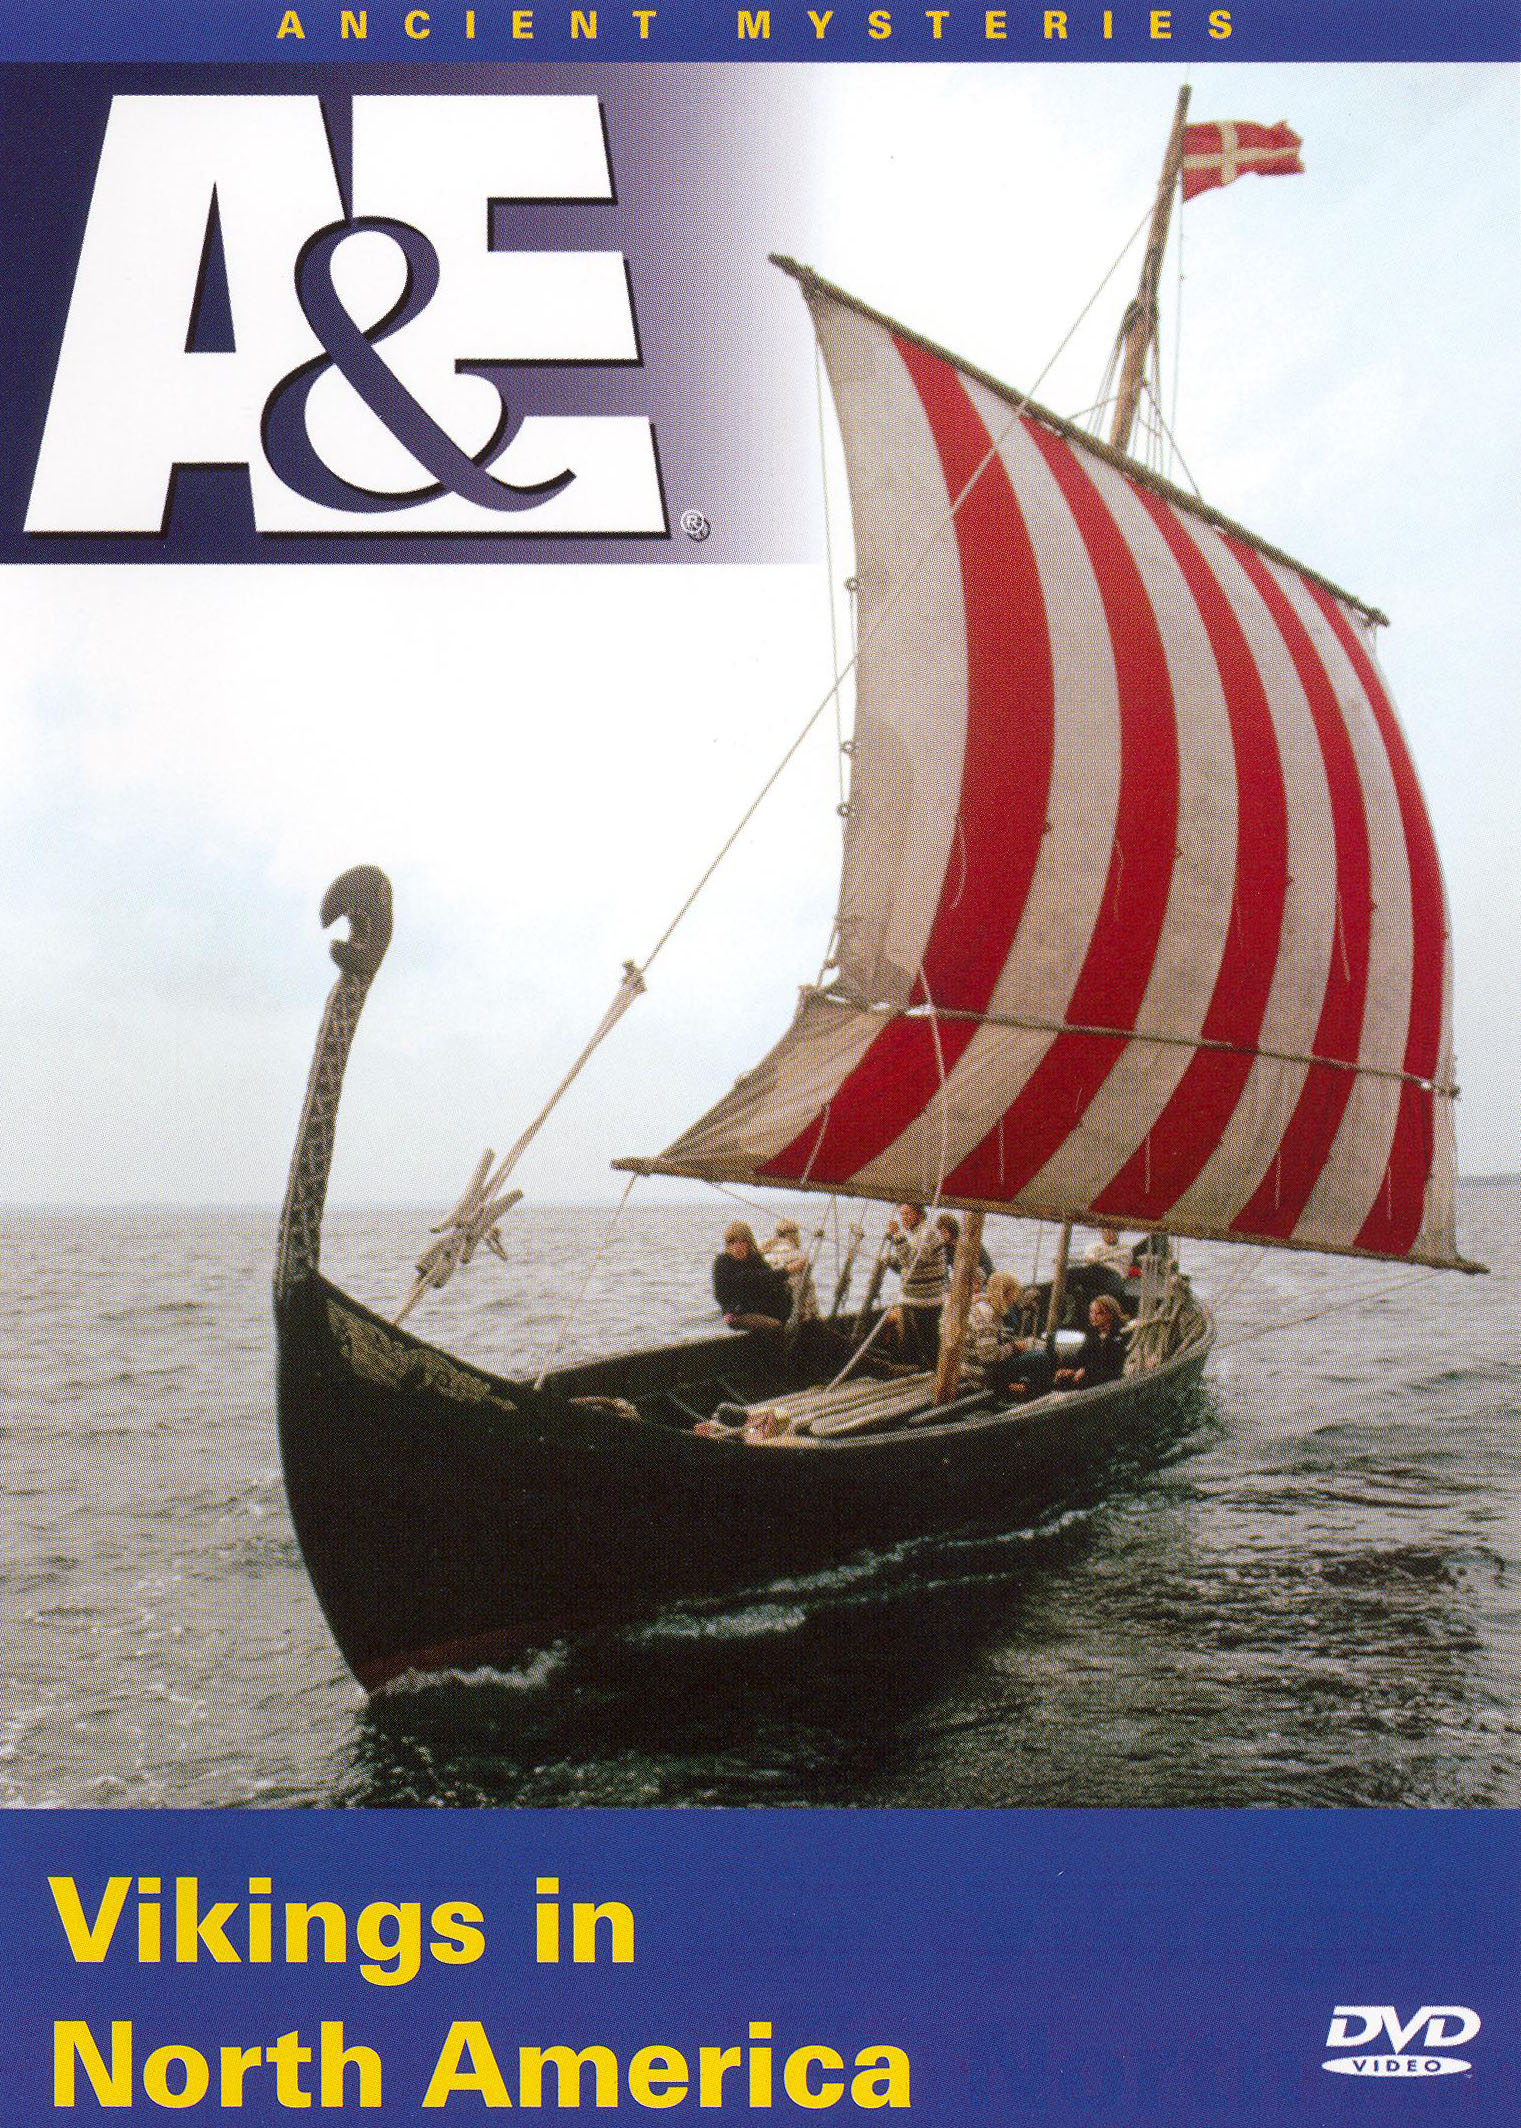 Ancient Mysteries: The Vikings in North America